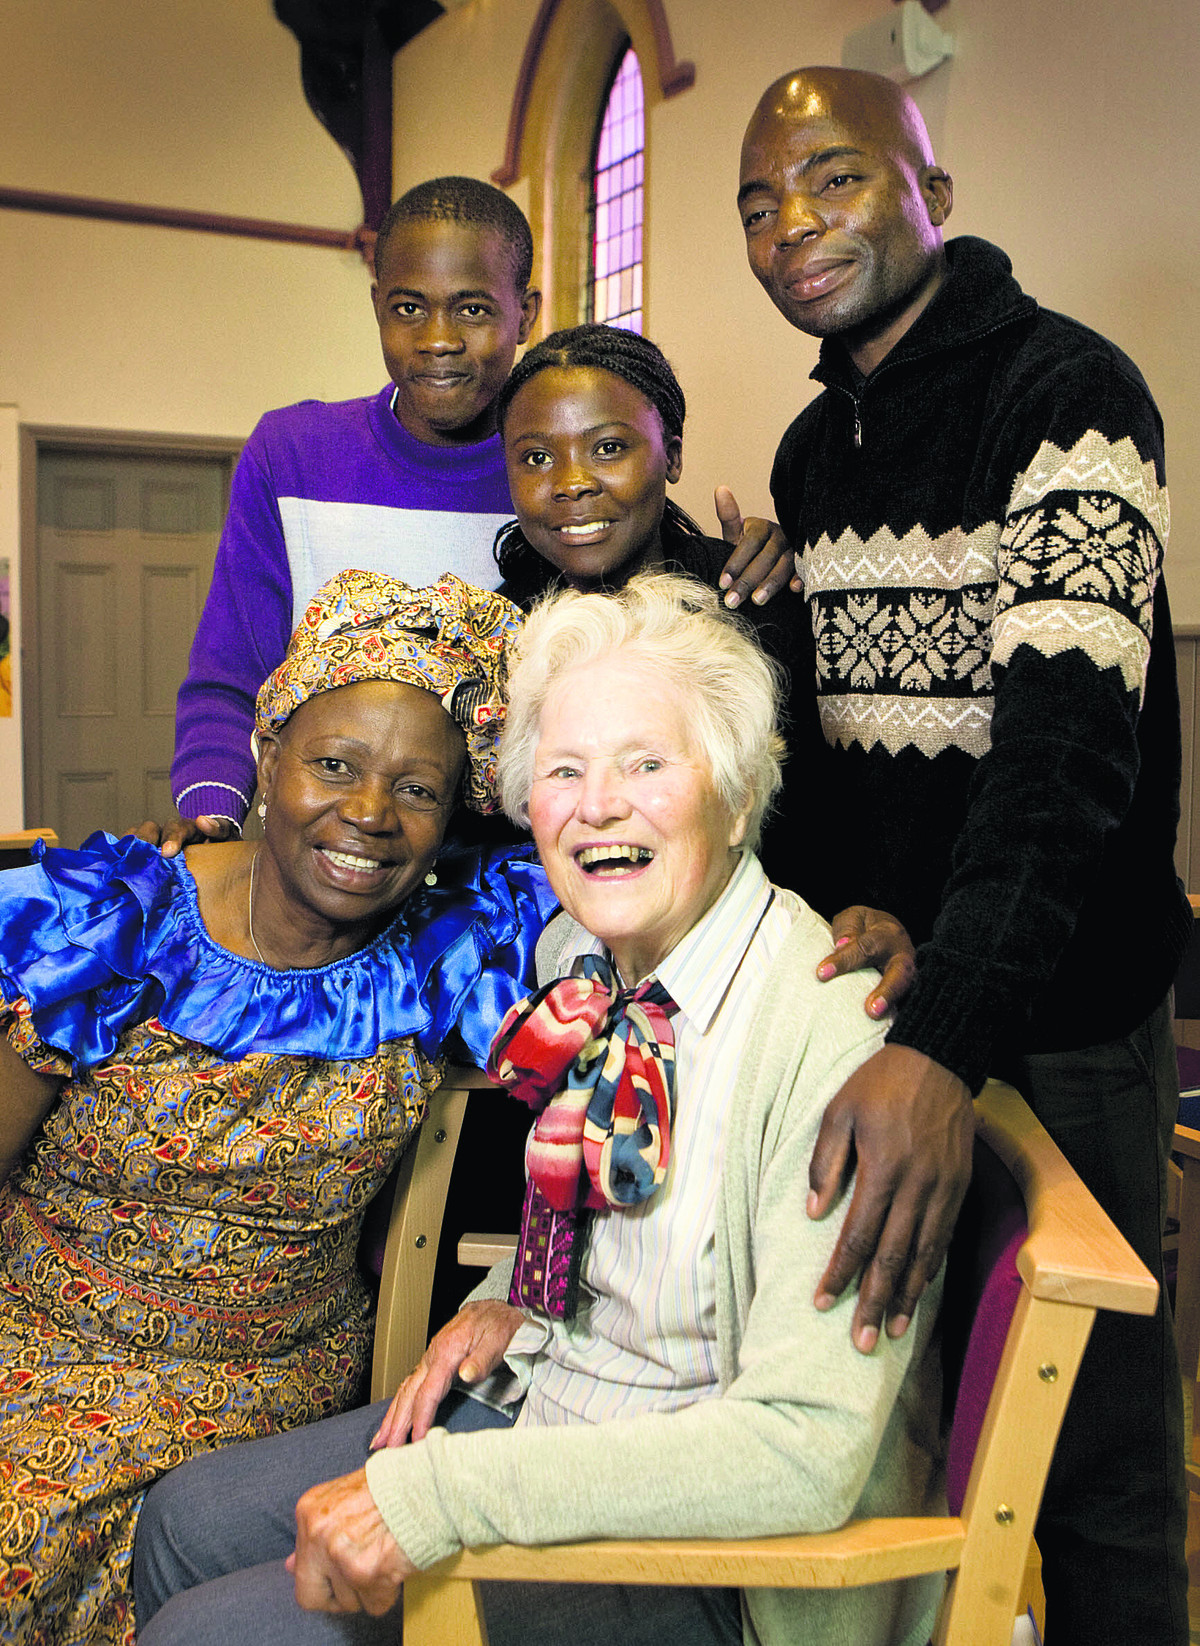 Reunion joy for Zambian and teacher 57 years on